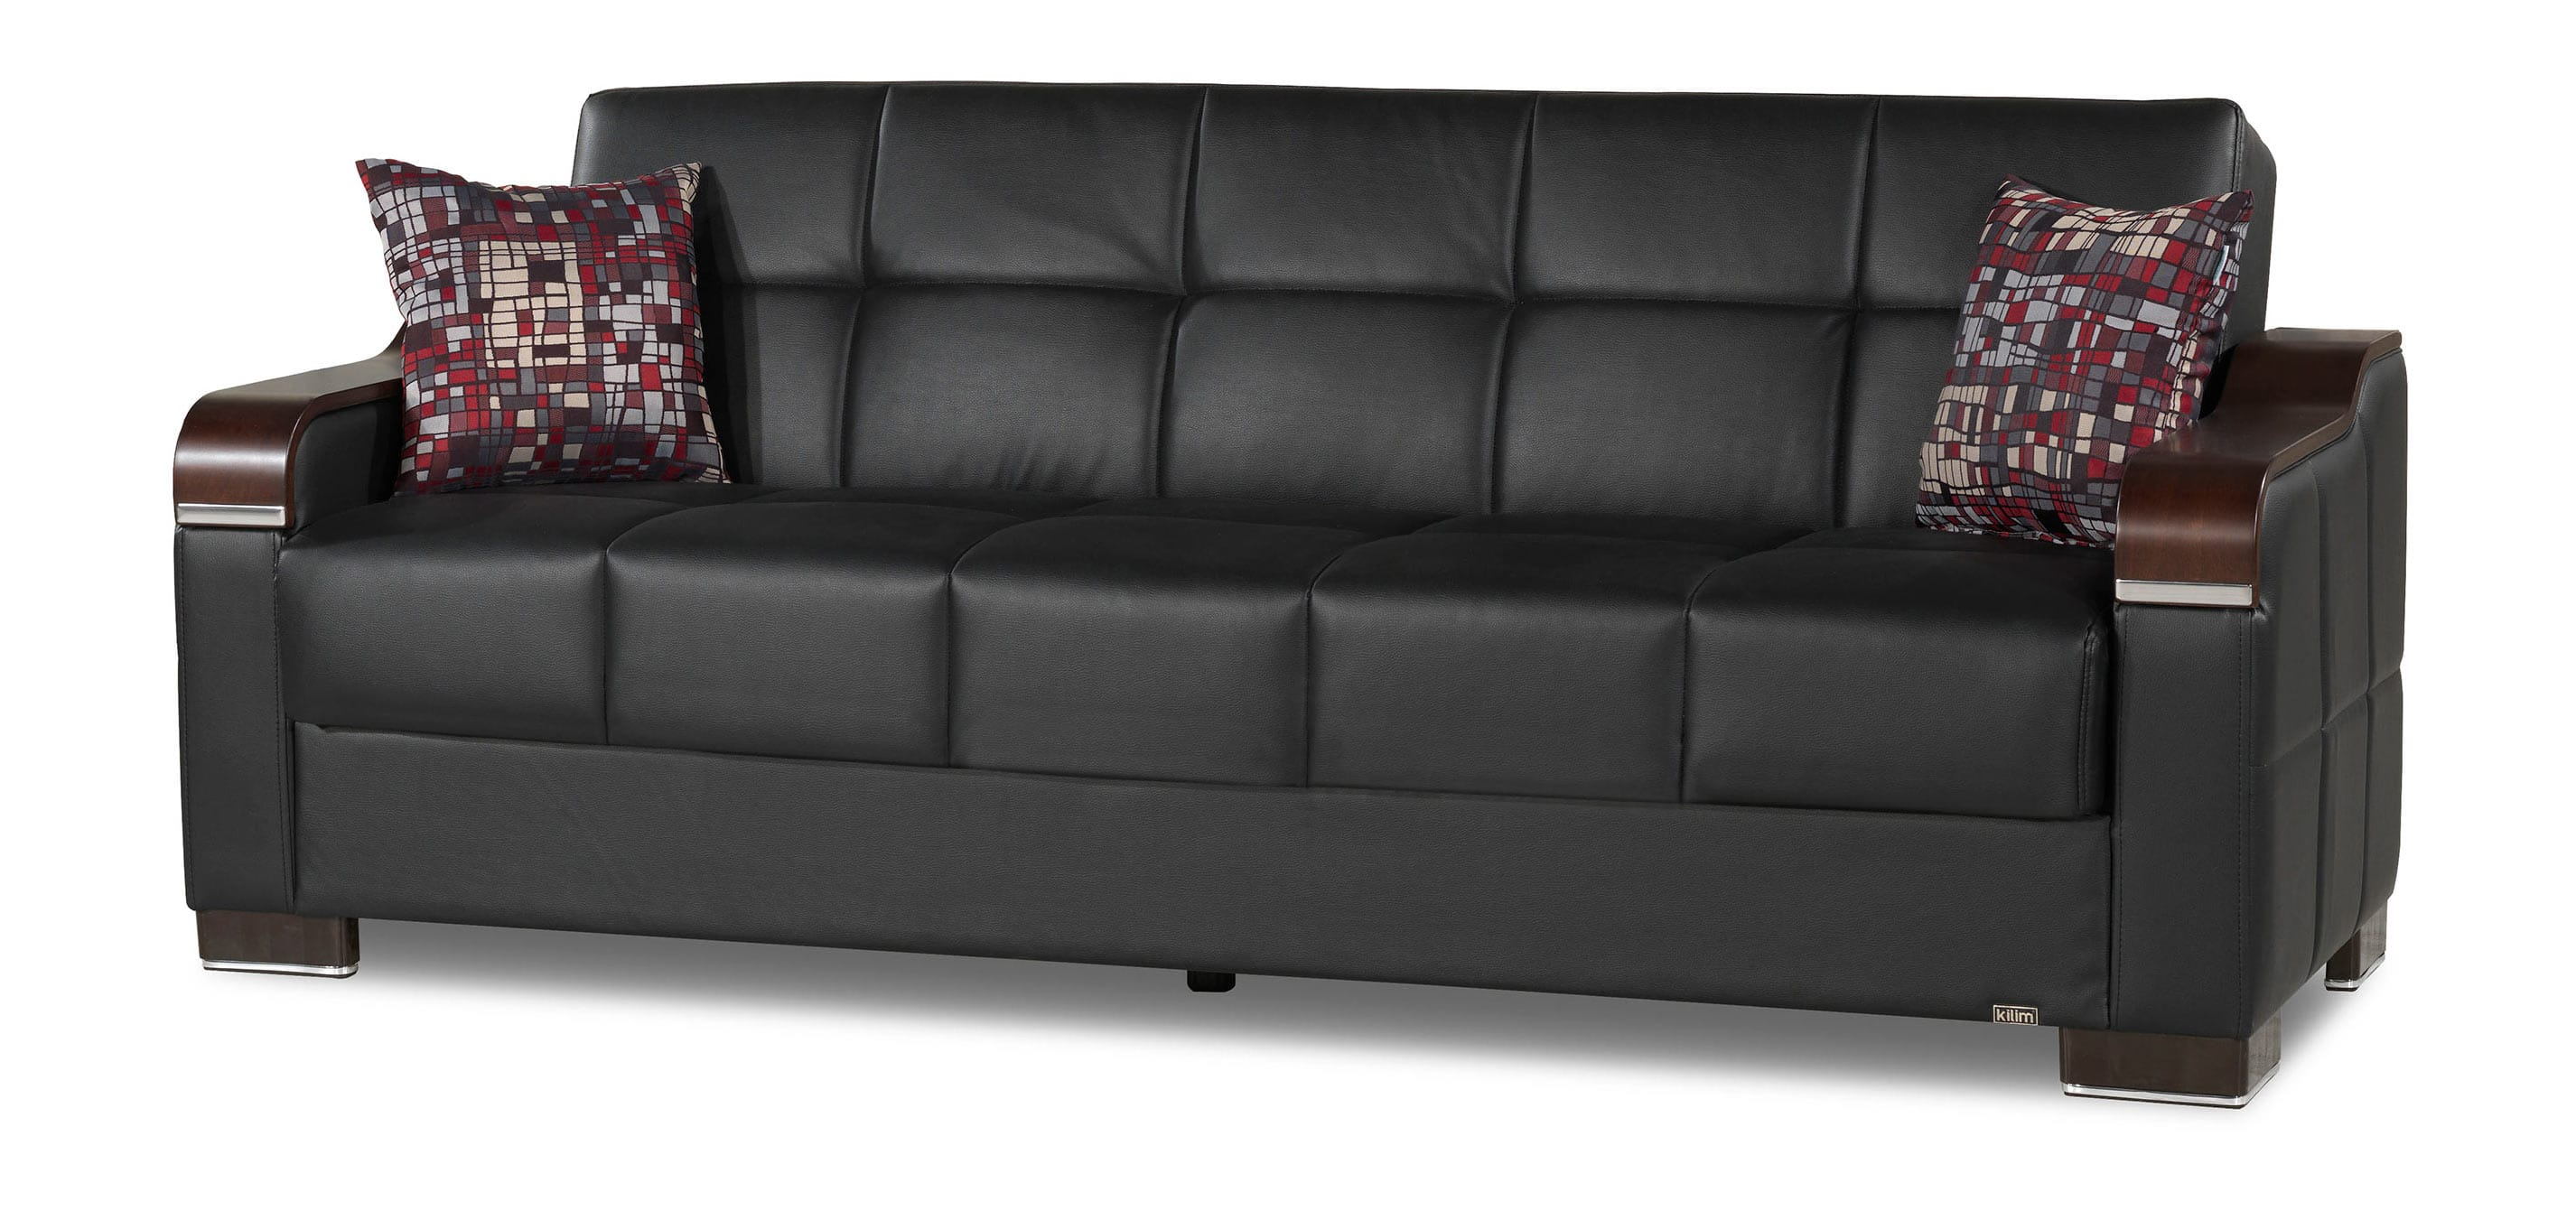 convertible sofa beds new york air lounger bed uptown black pu by casamode